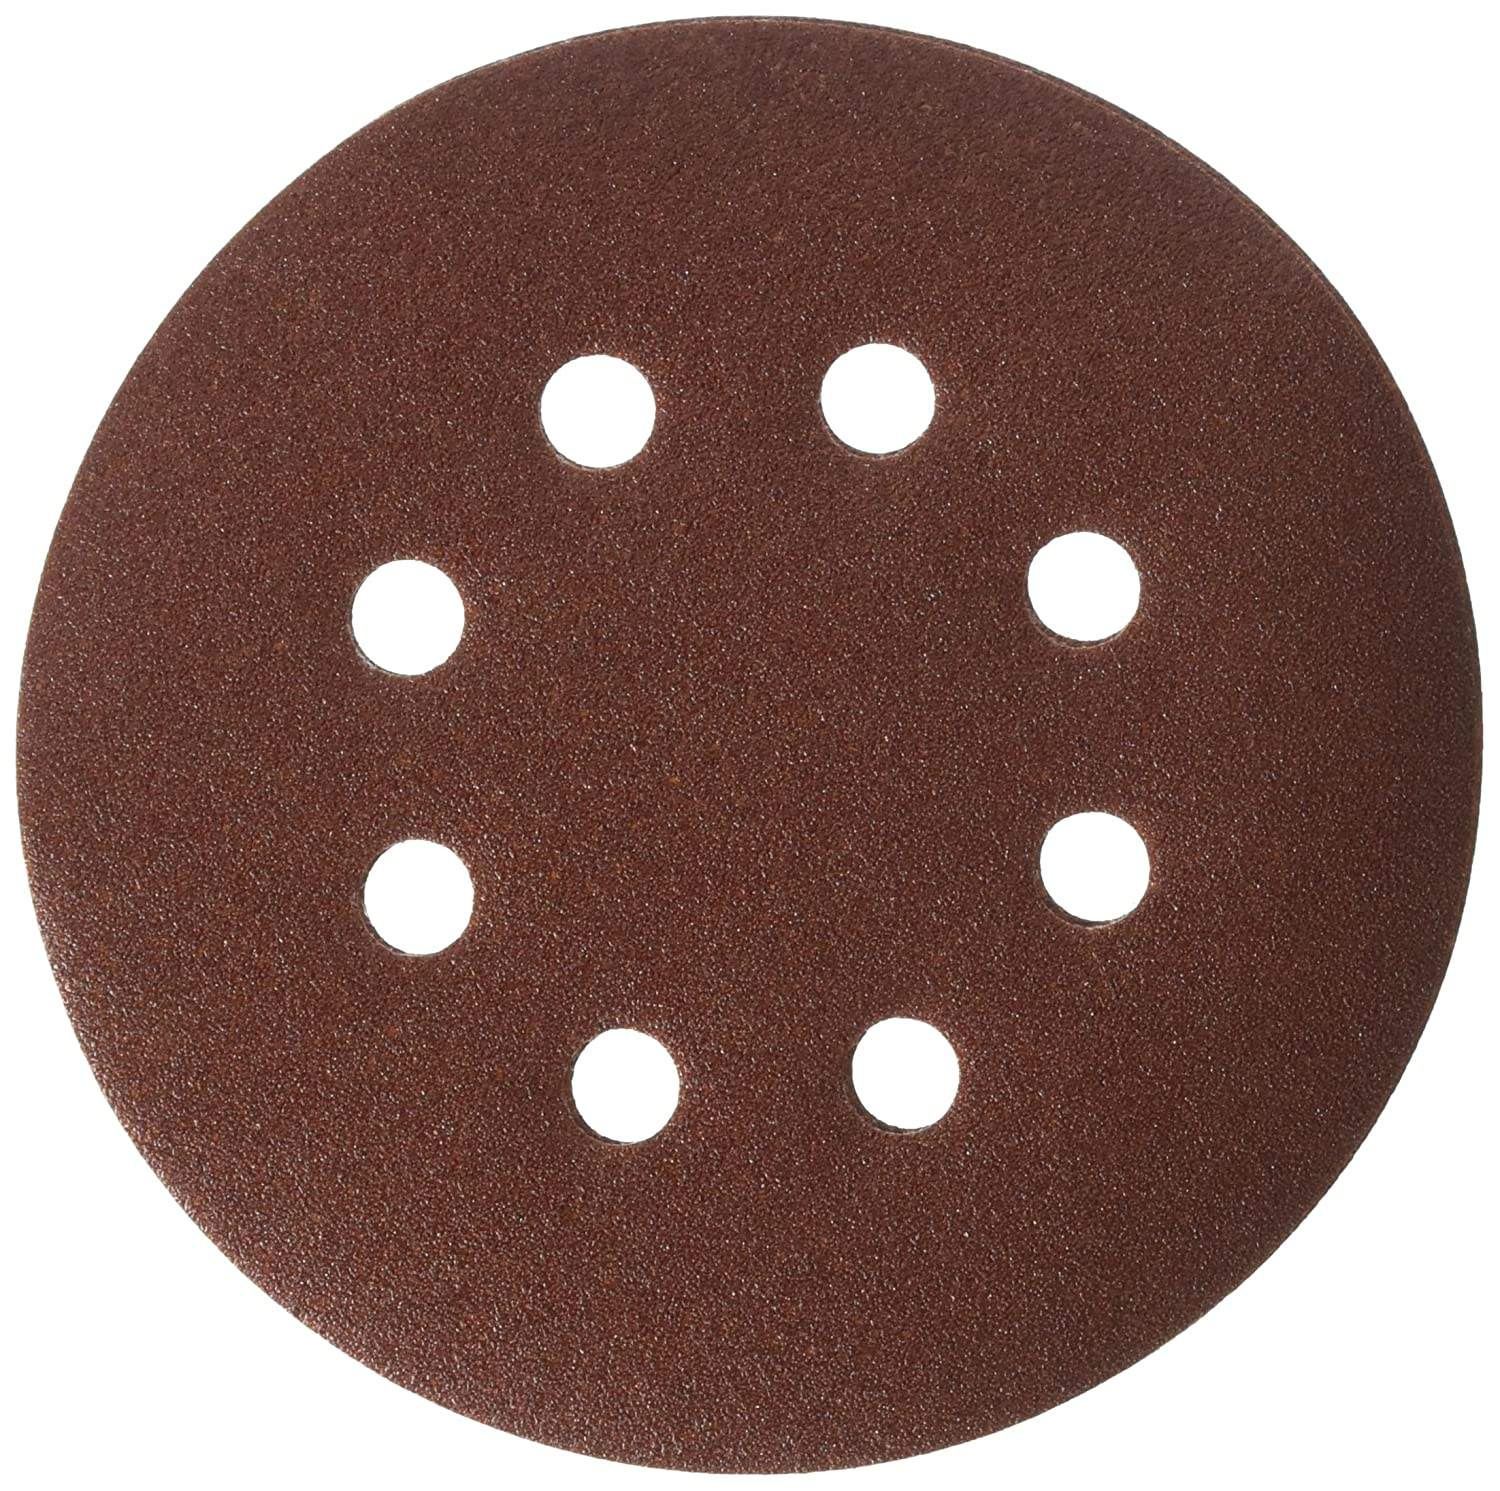 TV Non-Branded Items 15 Pack ALI INDUSTRIES 4141 5 120G Sand Disc